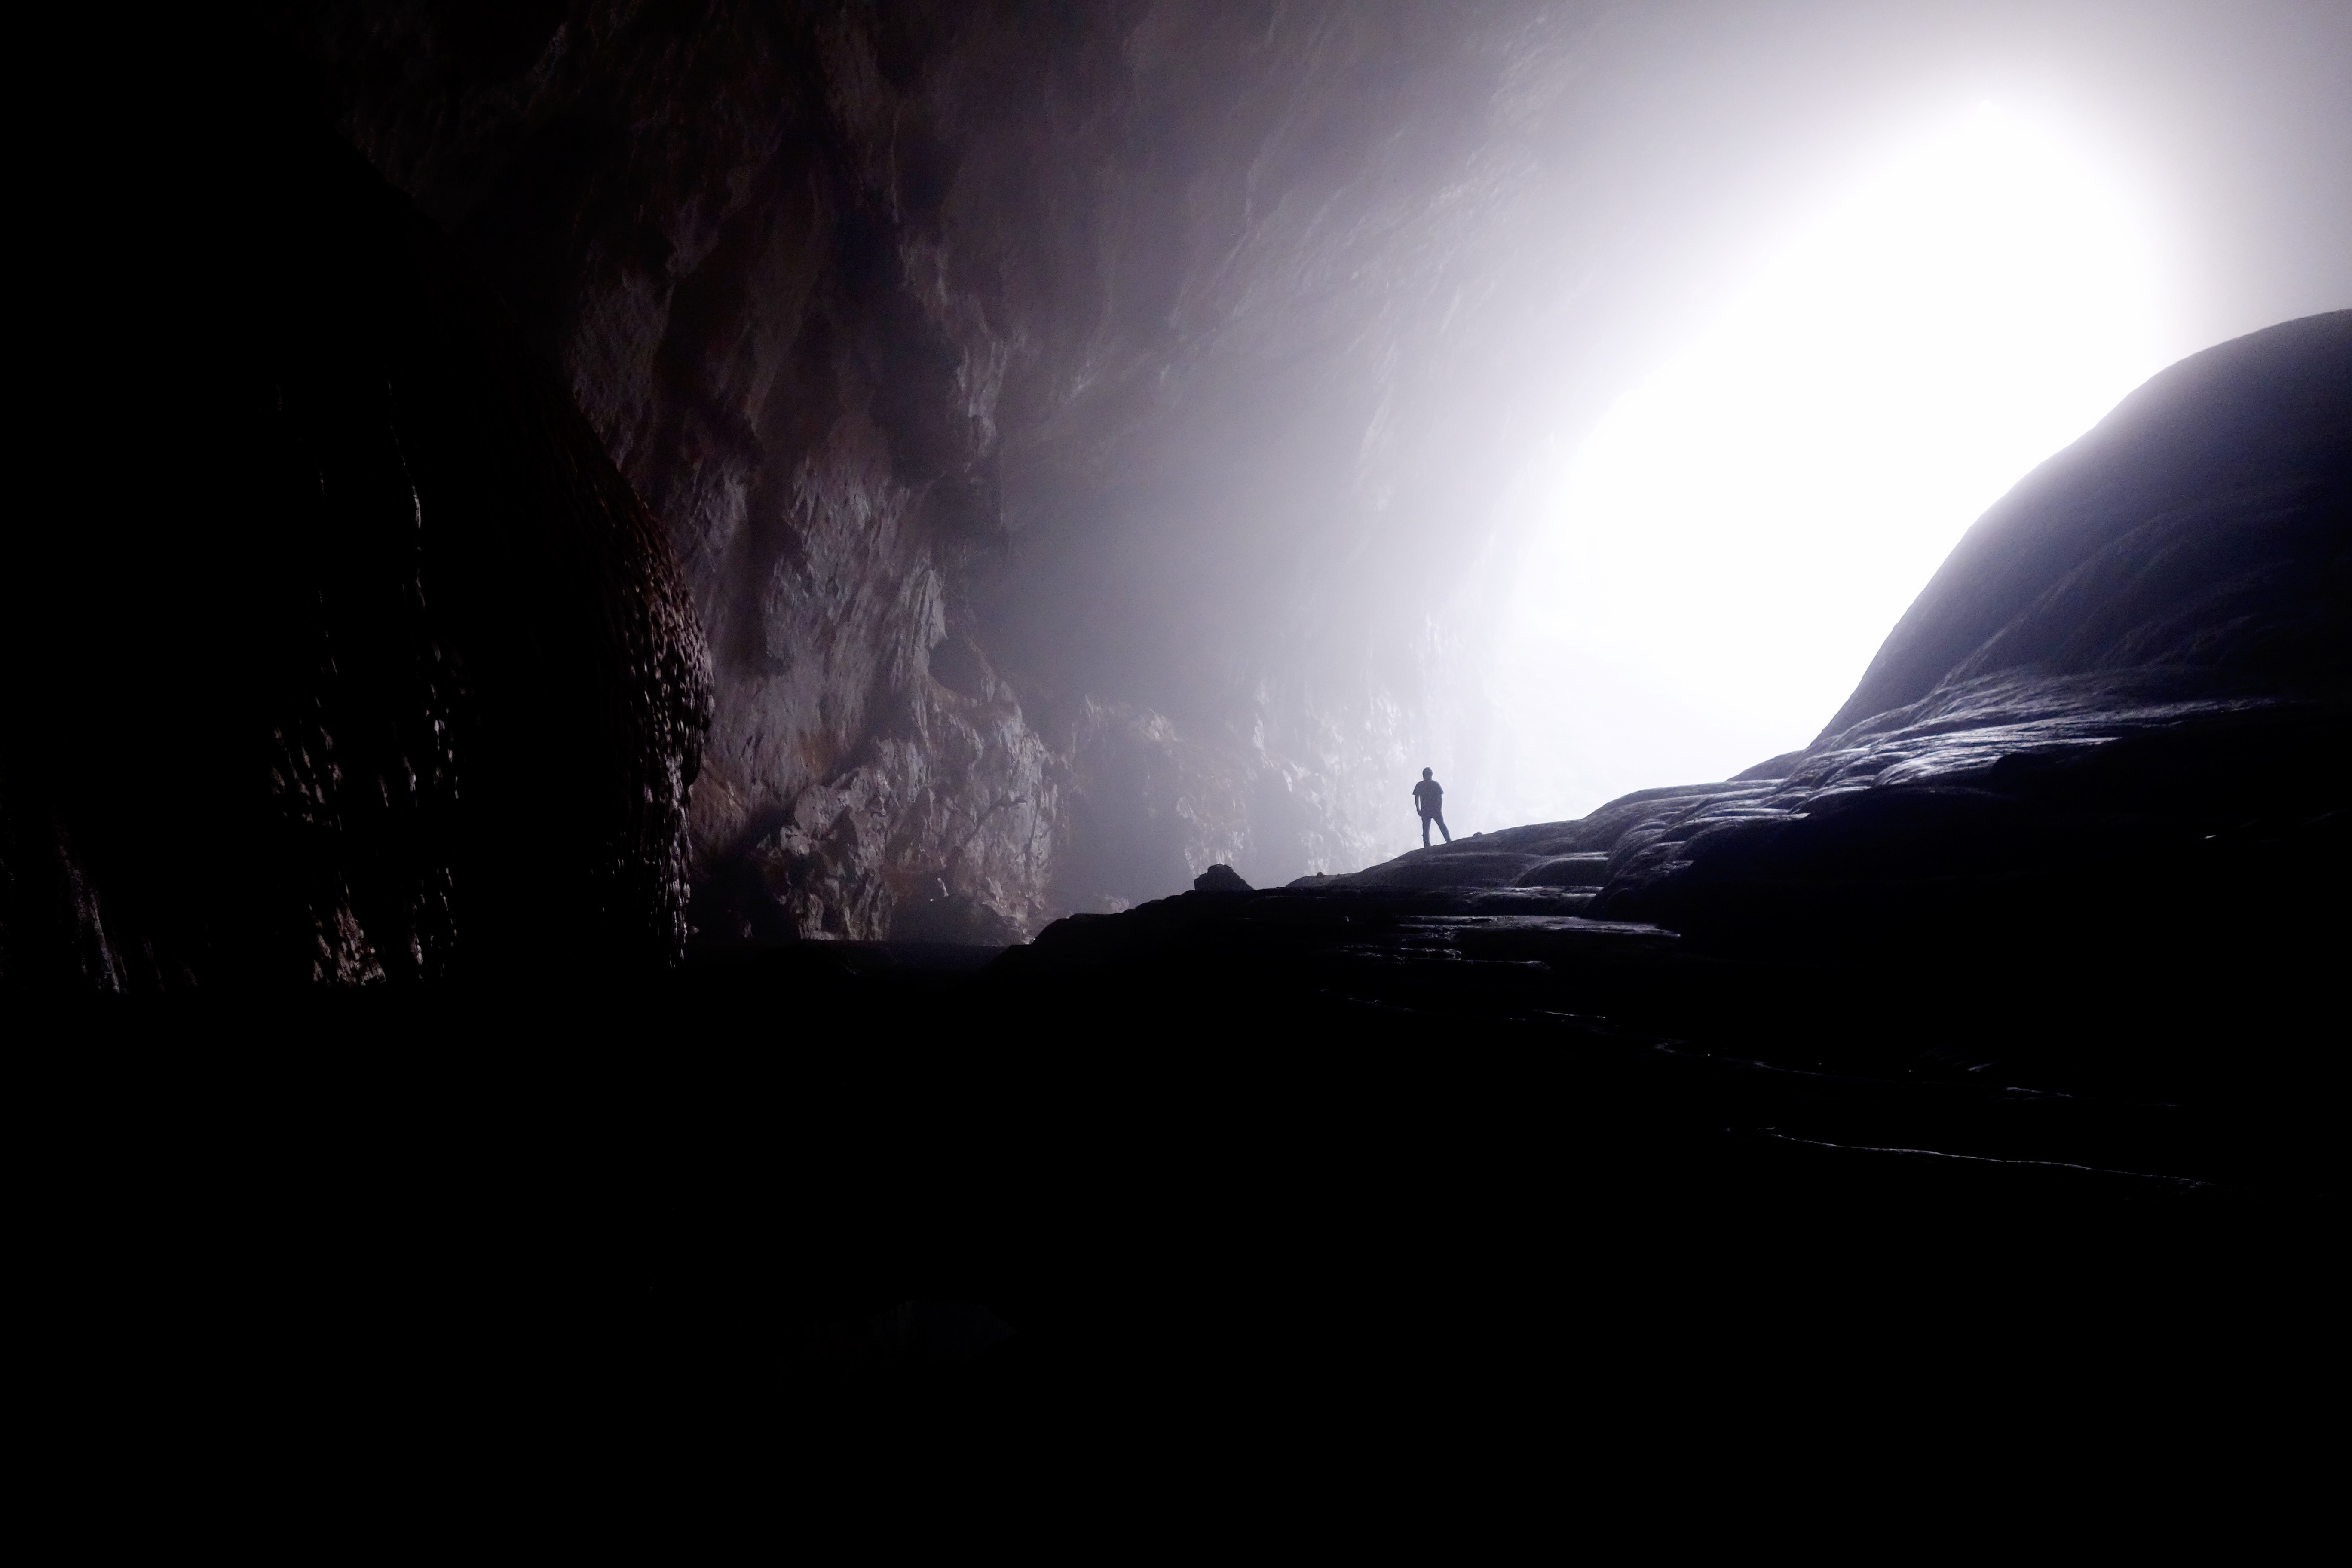 A silhouette of a man at the entrance to an enormous cavern